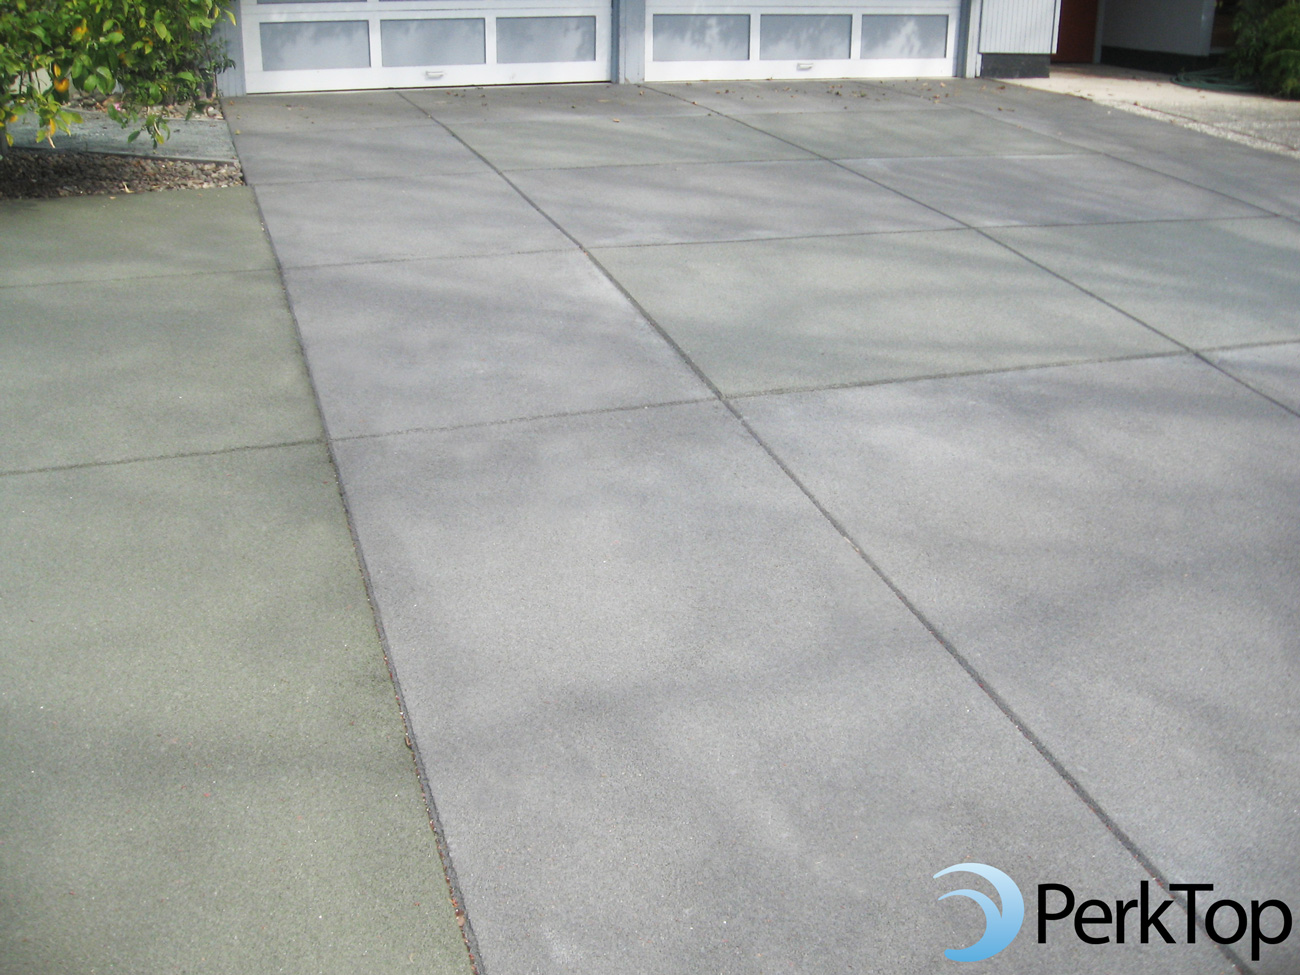 PerkTop-subtle-green-and-grey-pervious-concrete-driveway